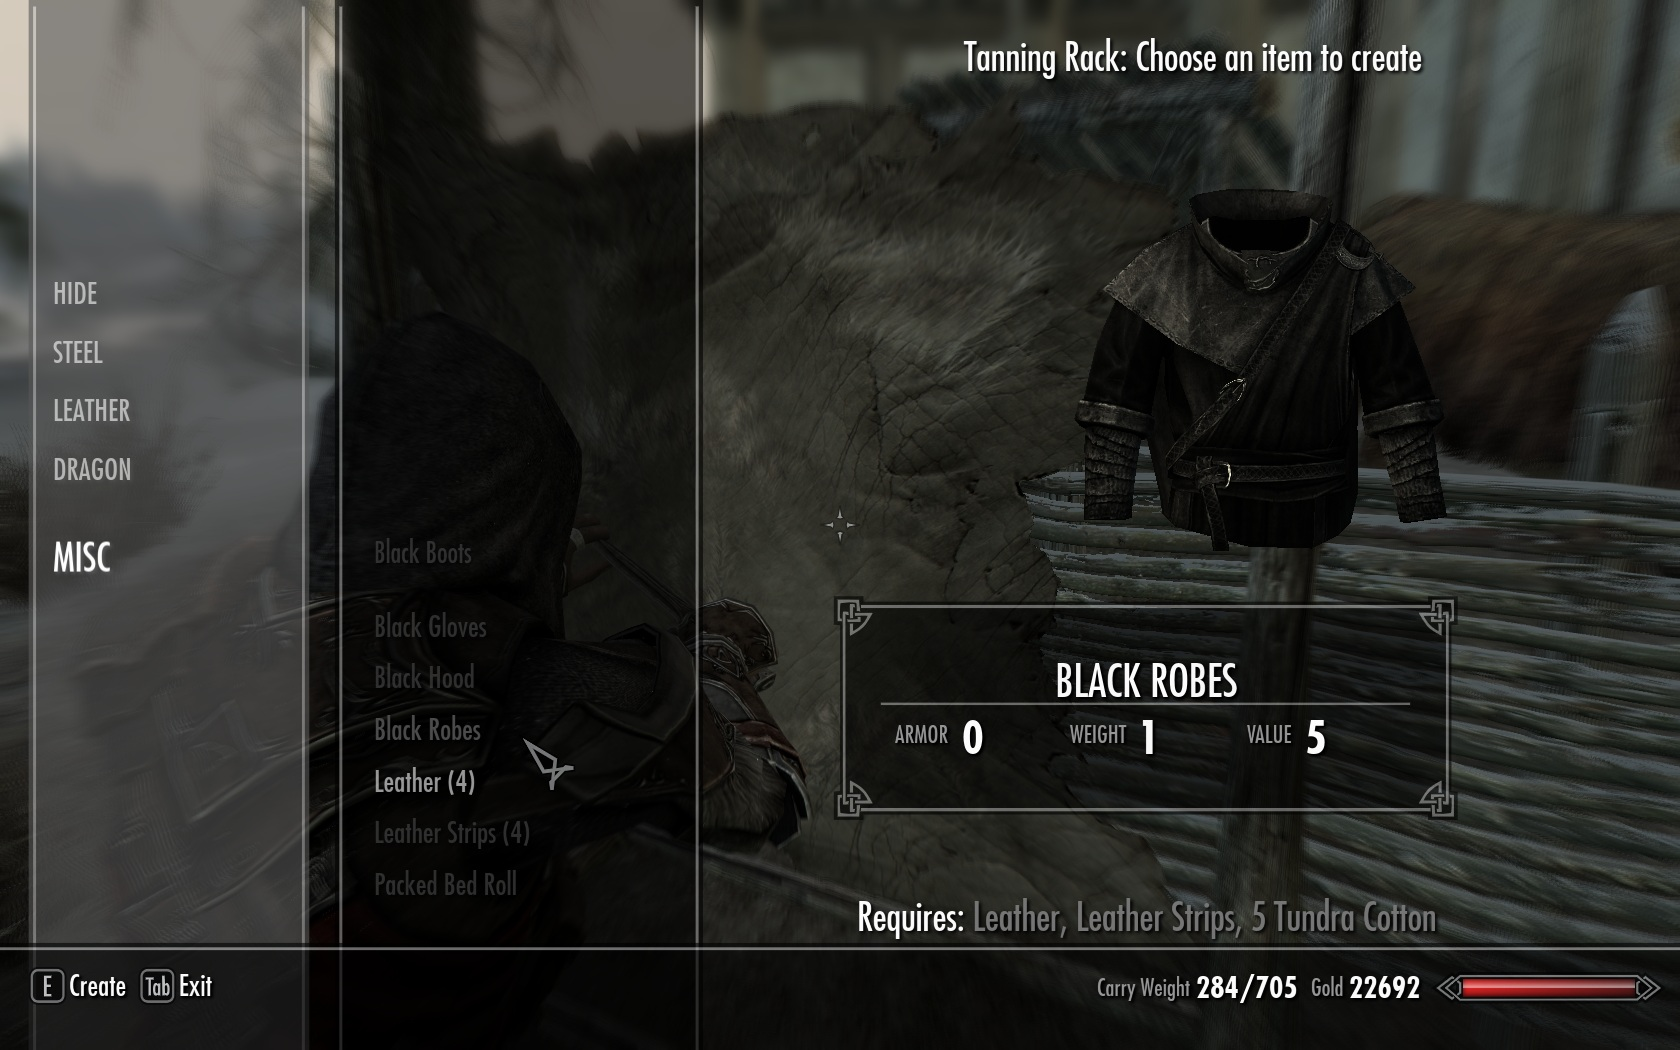 Black gloves skyrim - Plain Black Gloves Boots Hood And Robe At Skyrim Nexus Mods And Community